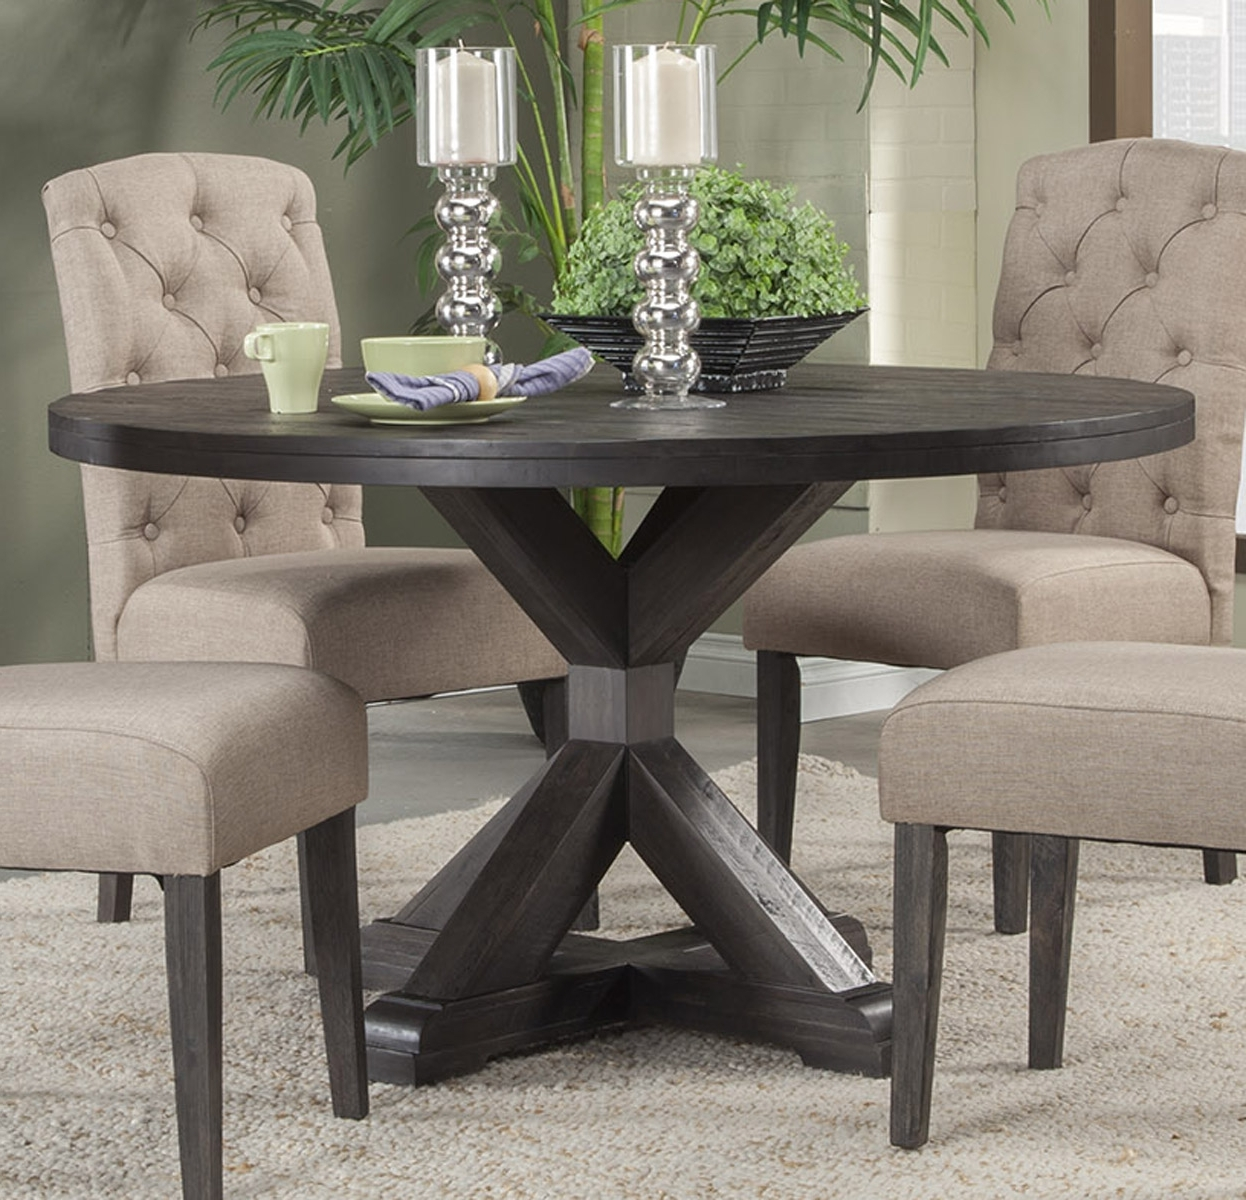 Alpine Furniture Newberry Round Dining Table In Salvaged Grey 1468 Inside 2017 Dining Sets (View 2 of 25)